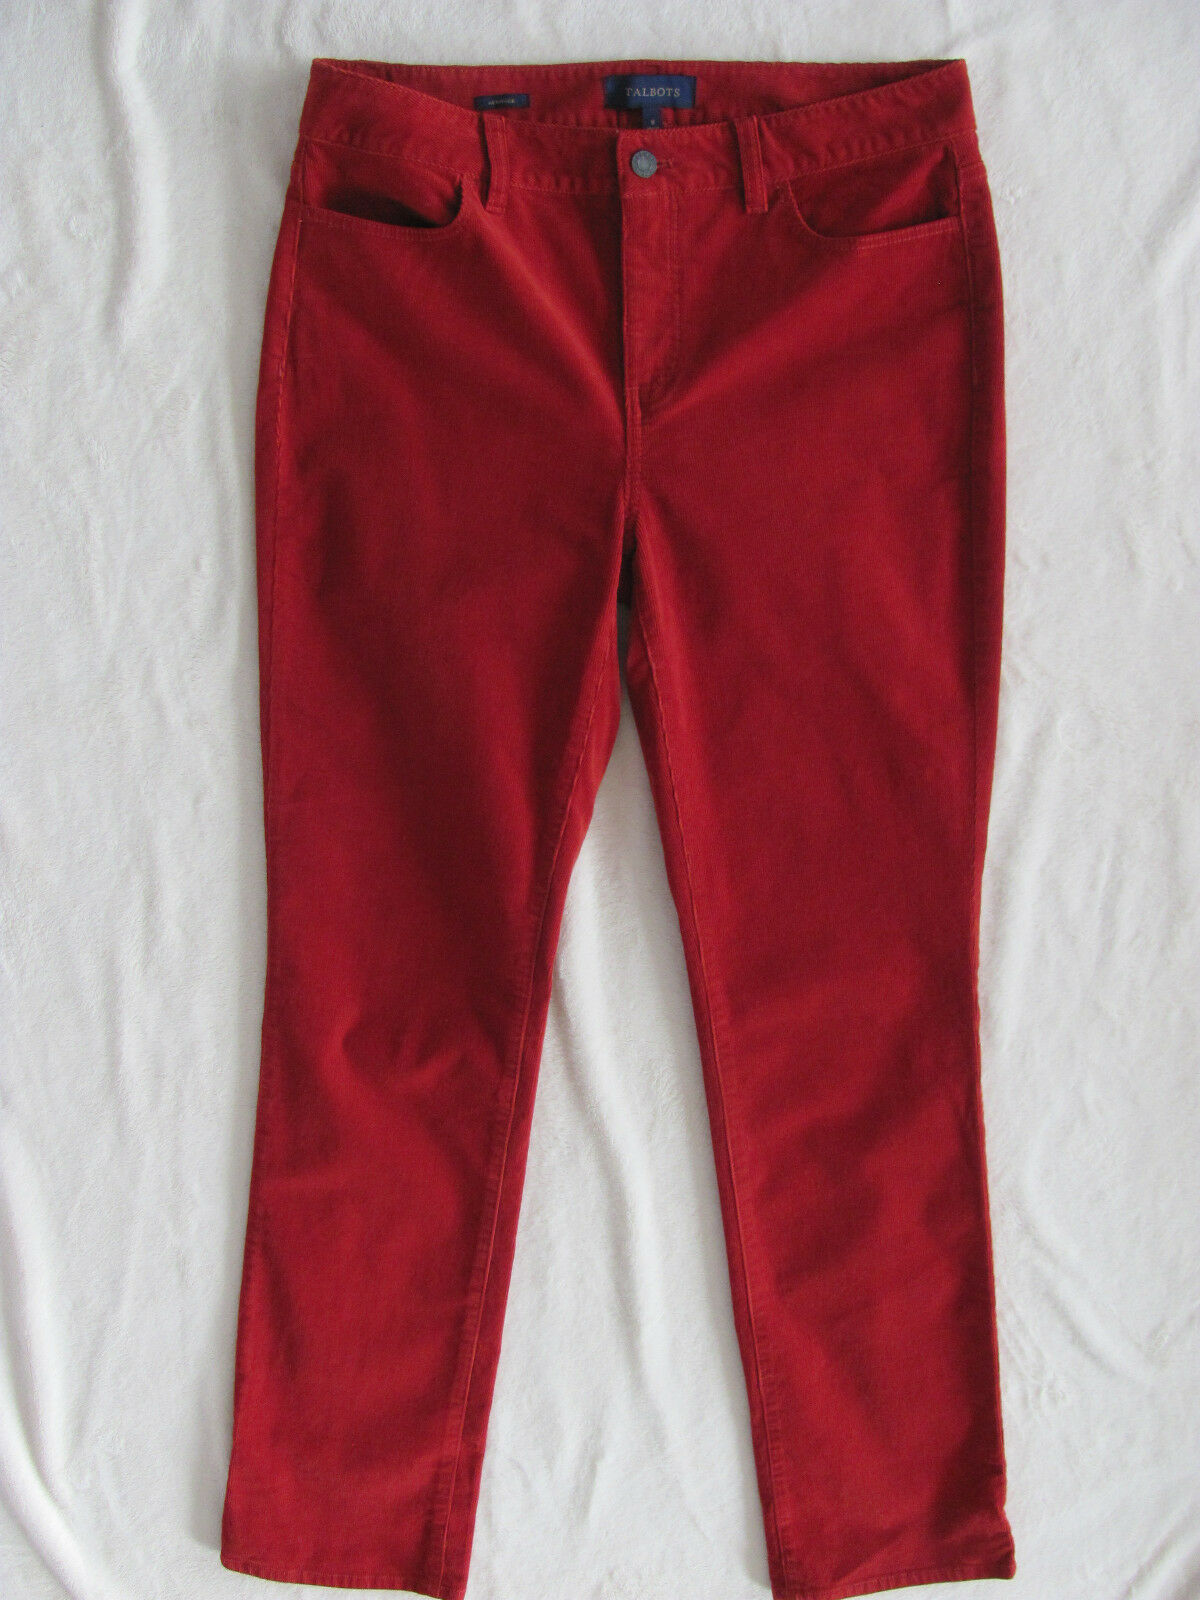 Talbots Heritage Straight Corduroy Pants- Rust - Size 8- NWT  89